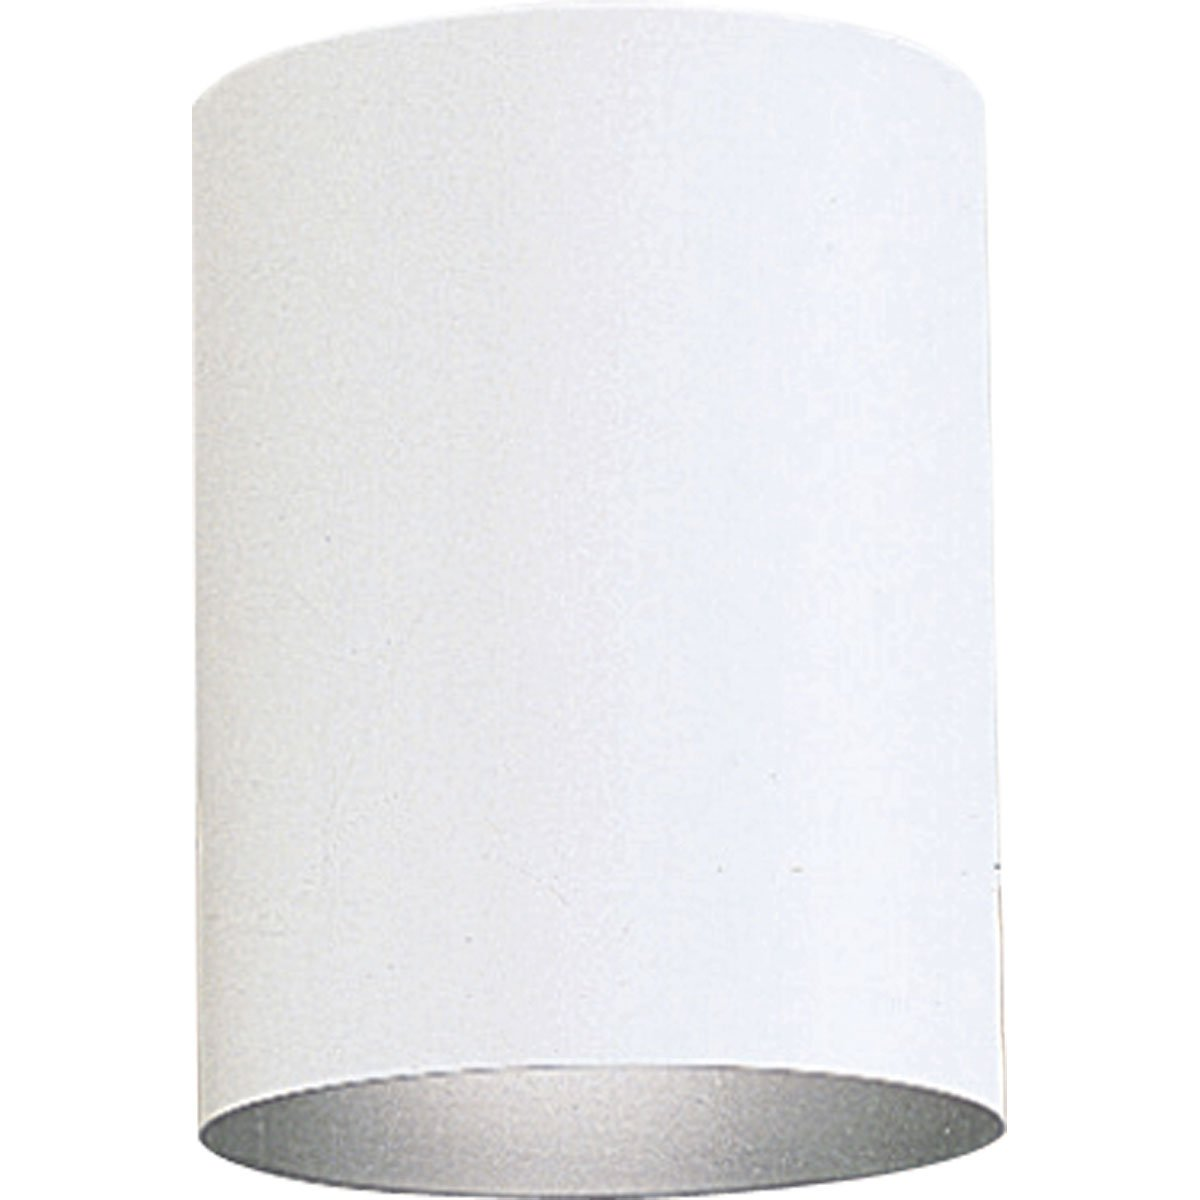 Progress Lighting P5774-30 5-Inch Flush Mount Cylinder with Heavy Duty Aluminum Construction Powder Coated Finish and UL Listed For Wet Locations, White